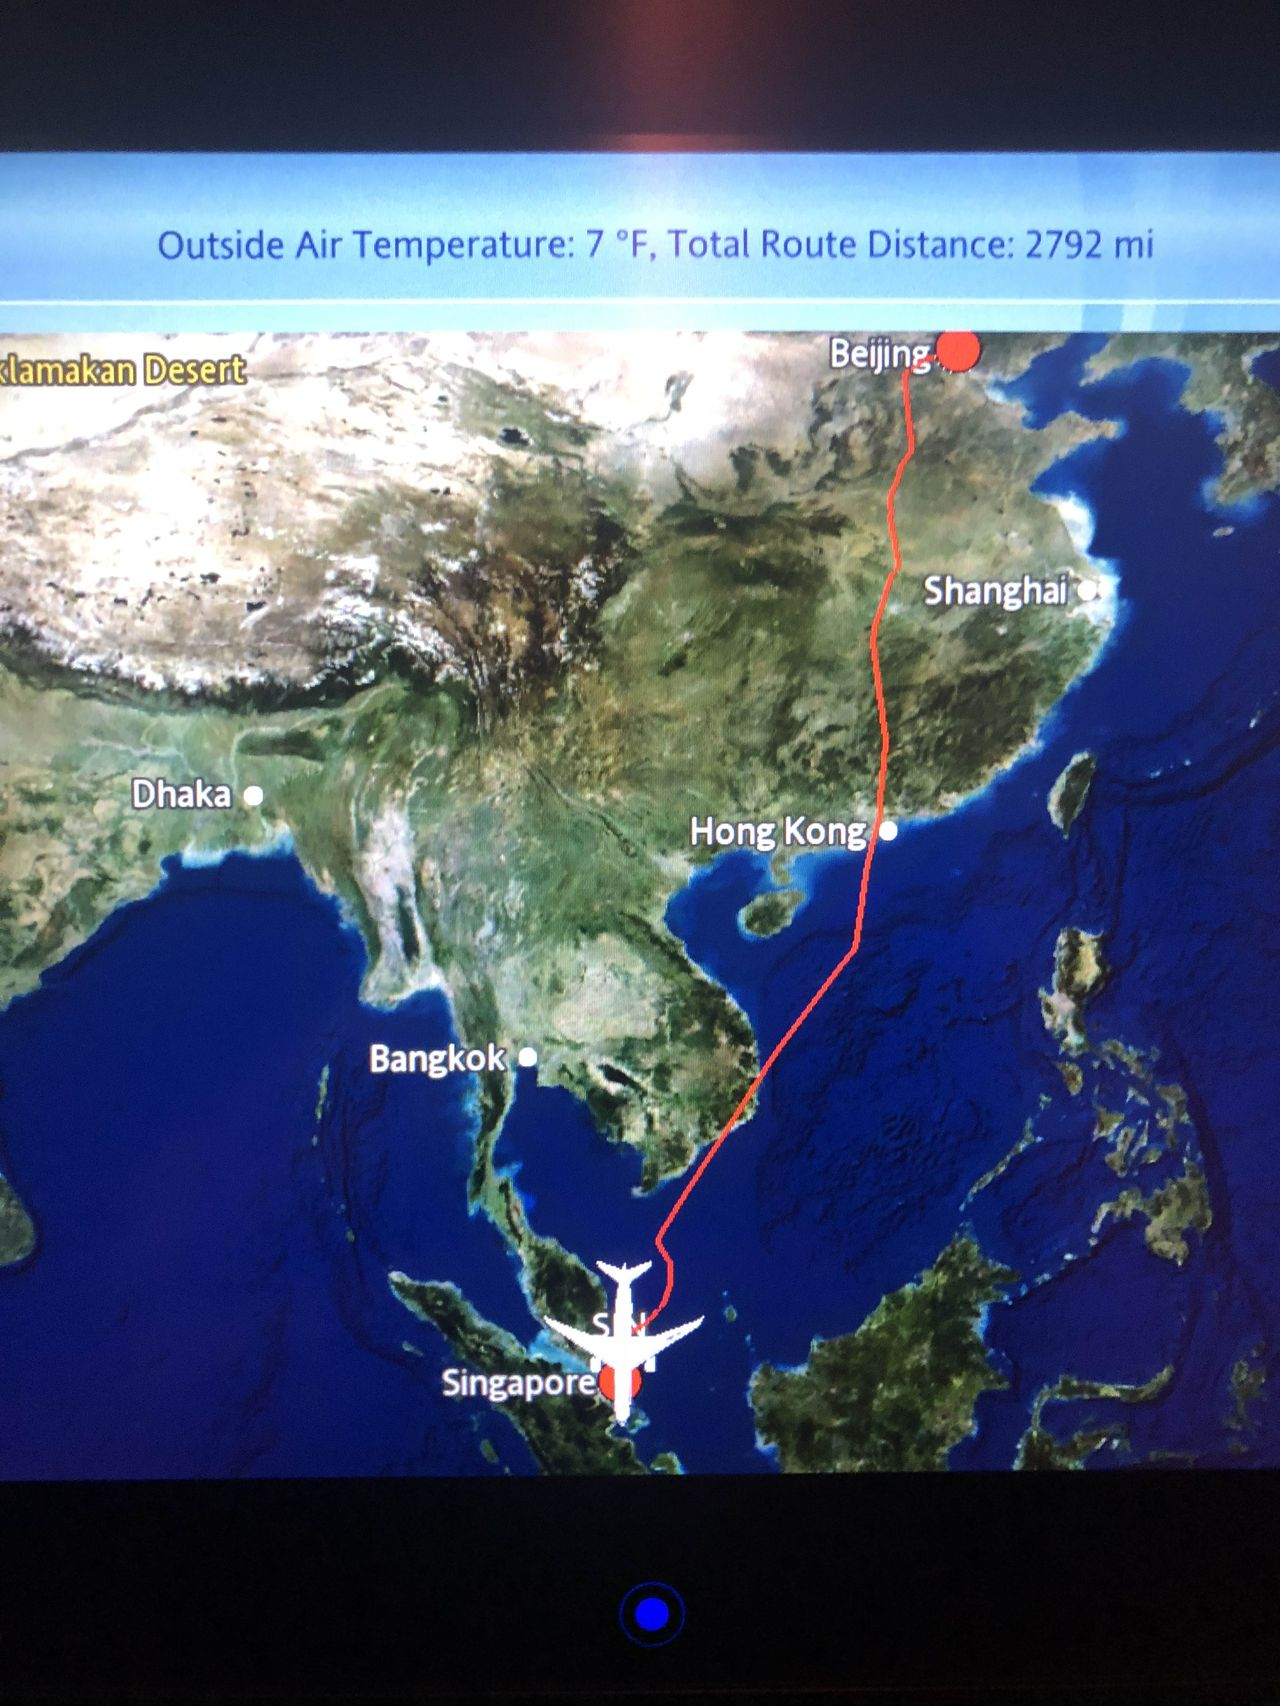 Review of Air China flight from Beijing to Singapore in Economy